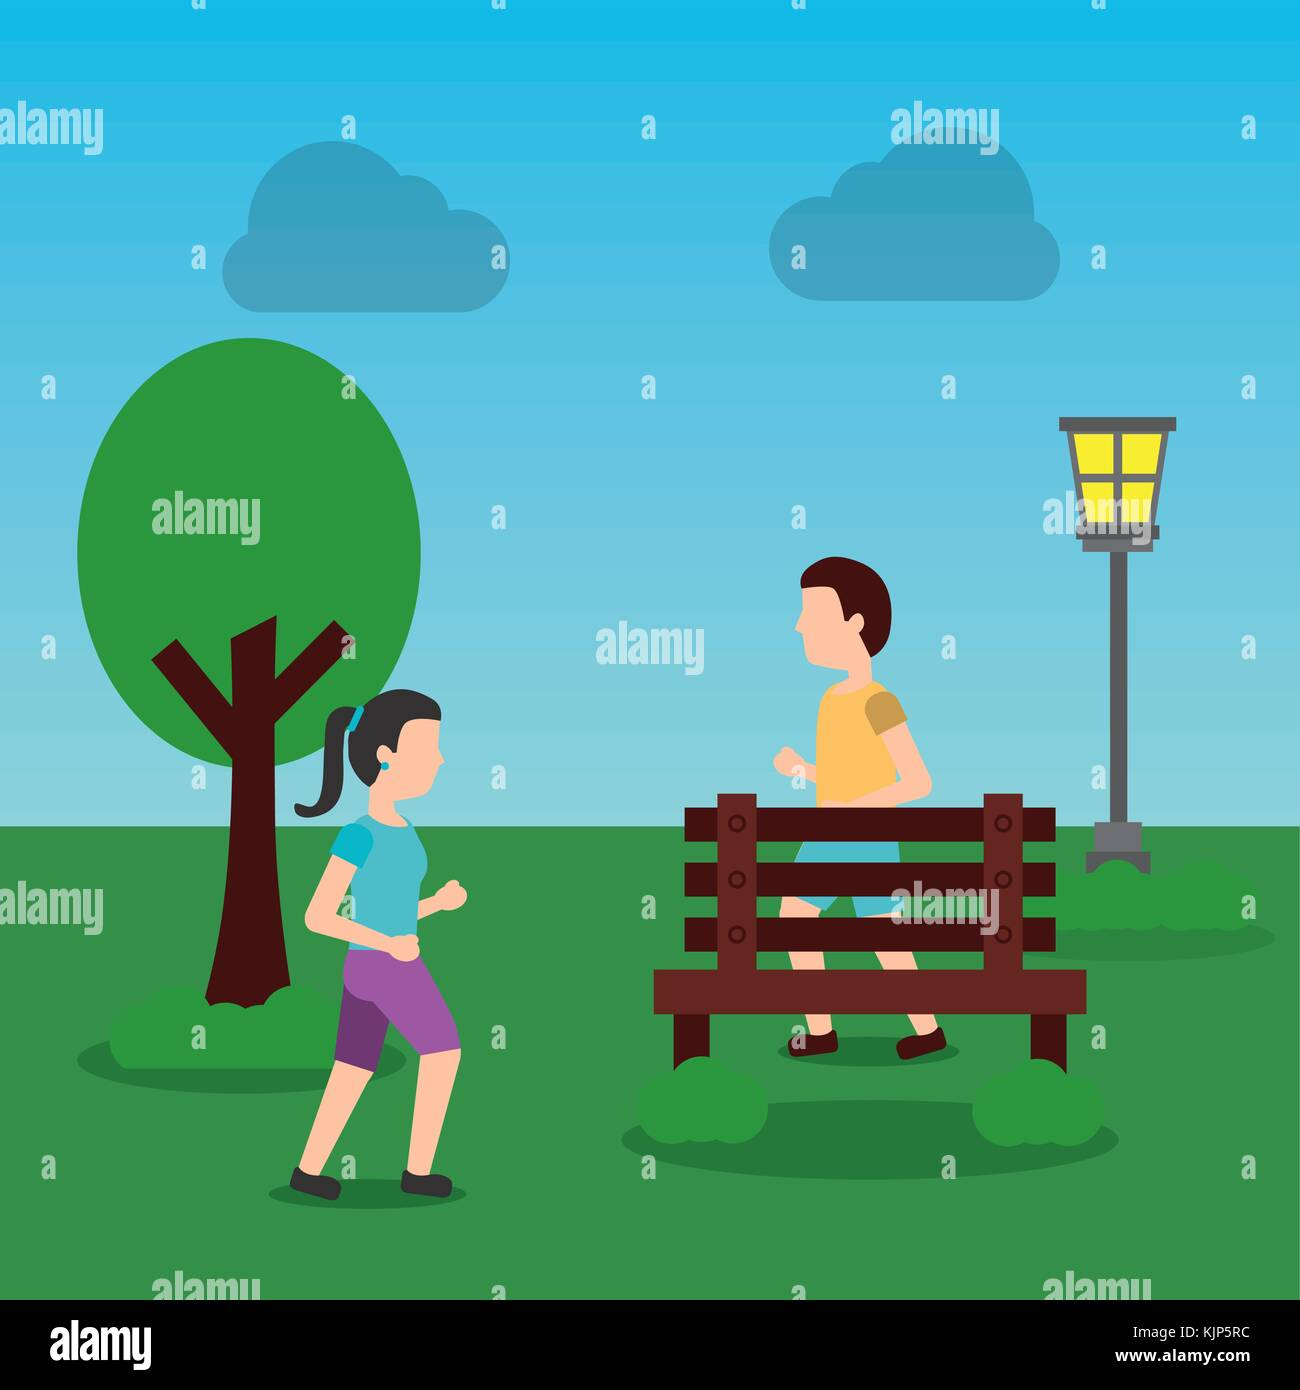 young man and woman jogging in the park - Stock Vector